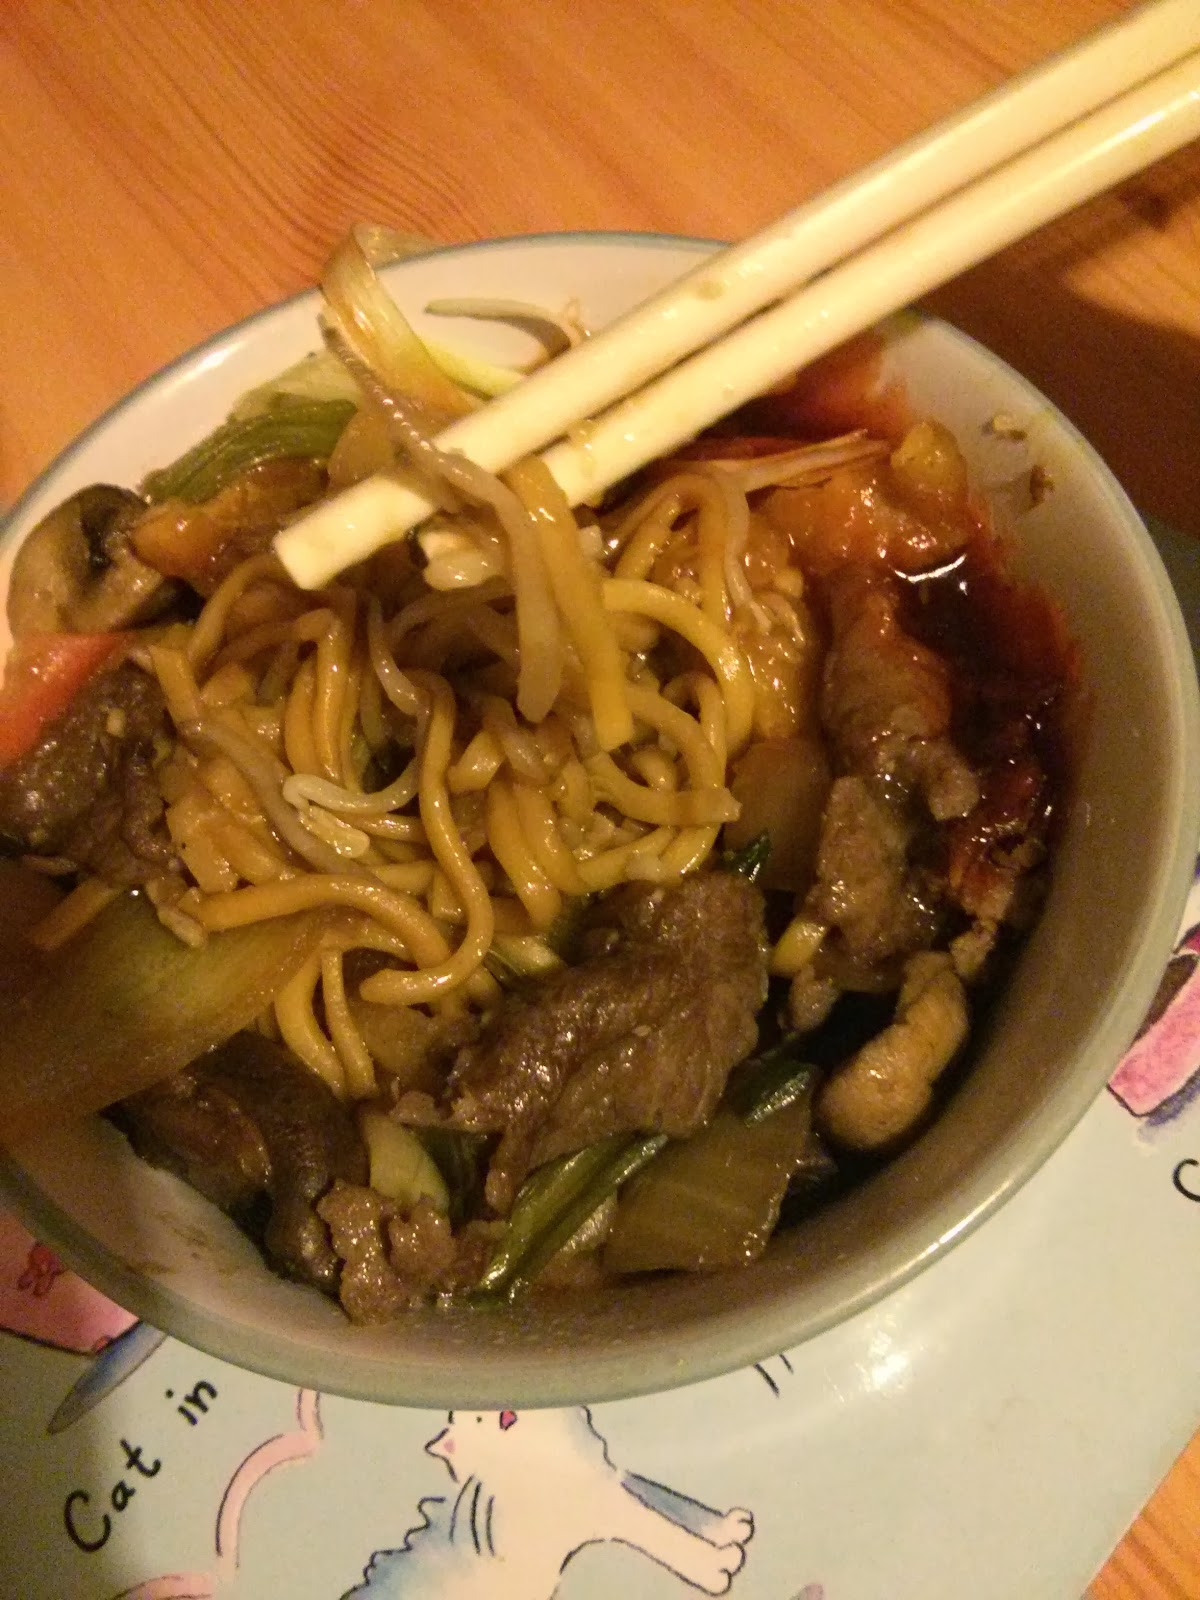 Bowl of Chinese Food with Chopsticks